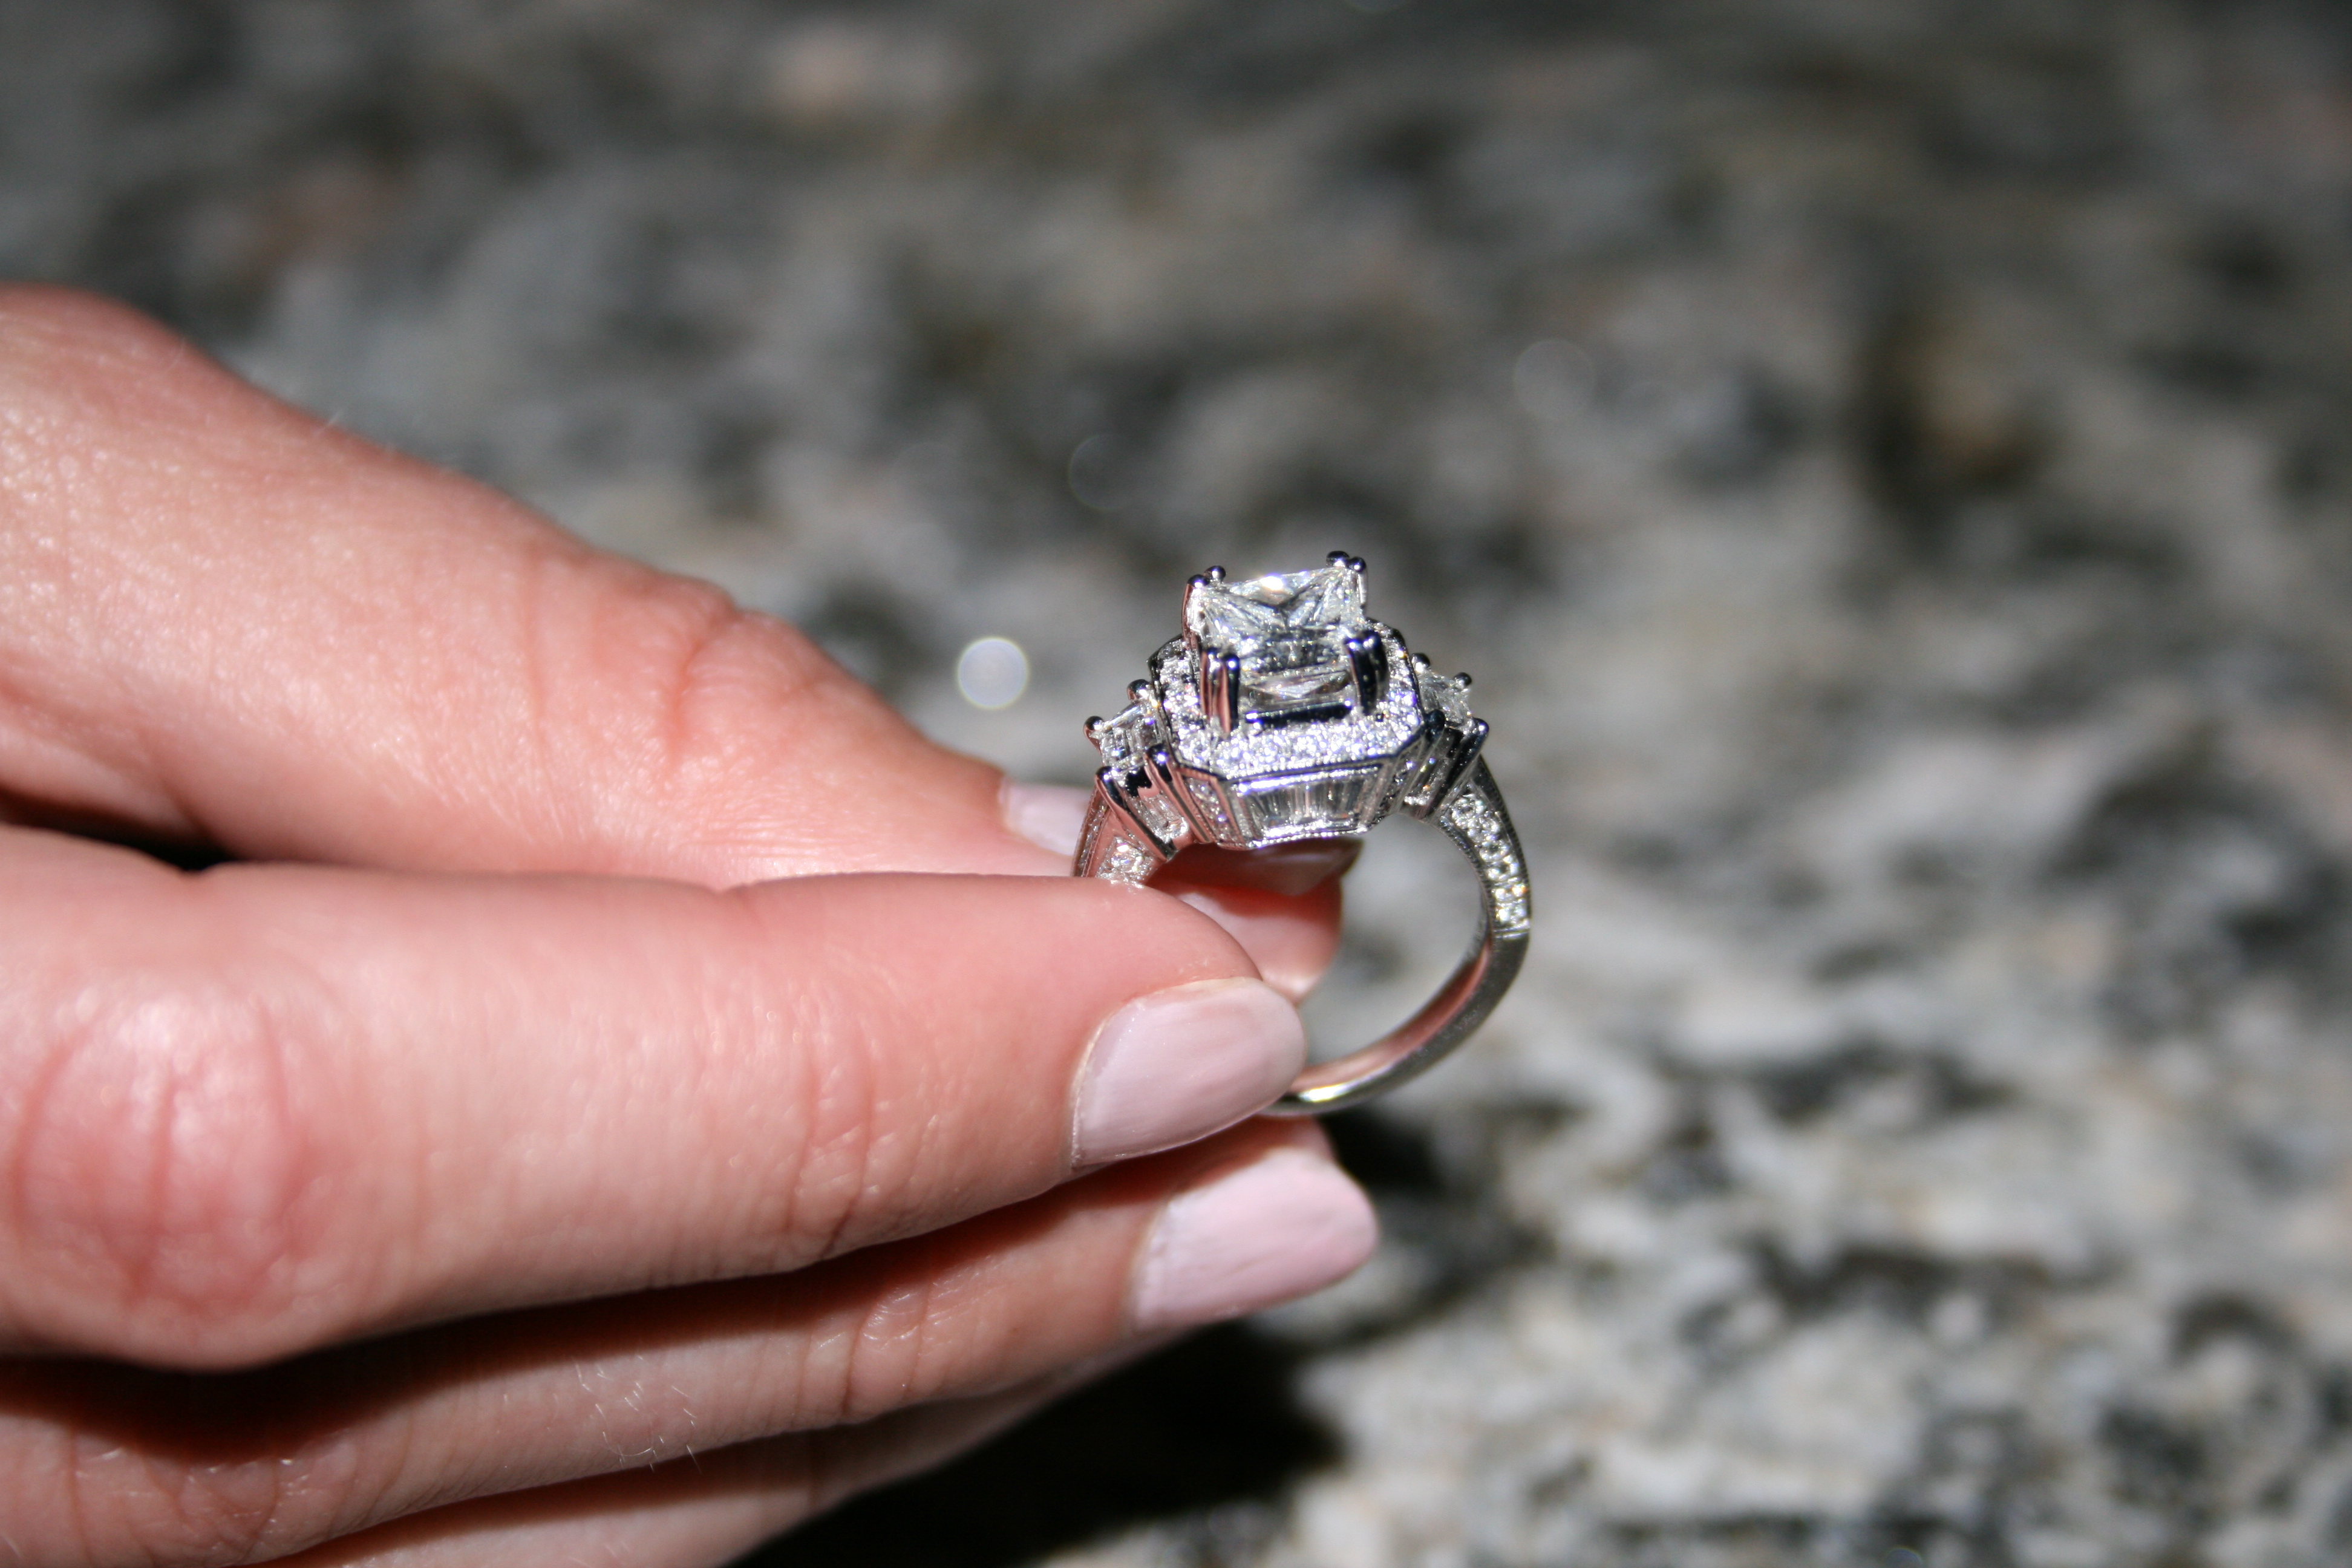 Princess Cut Engagement Ring with Vintage Halo Setting - RingSpotters